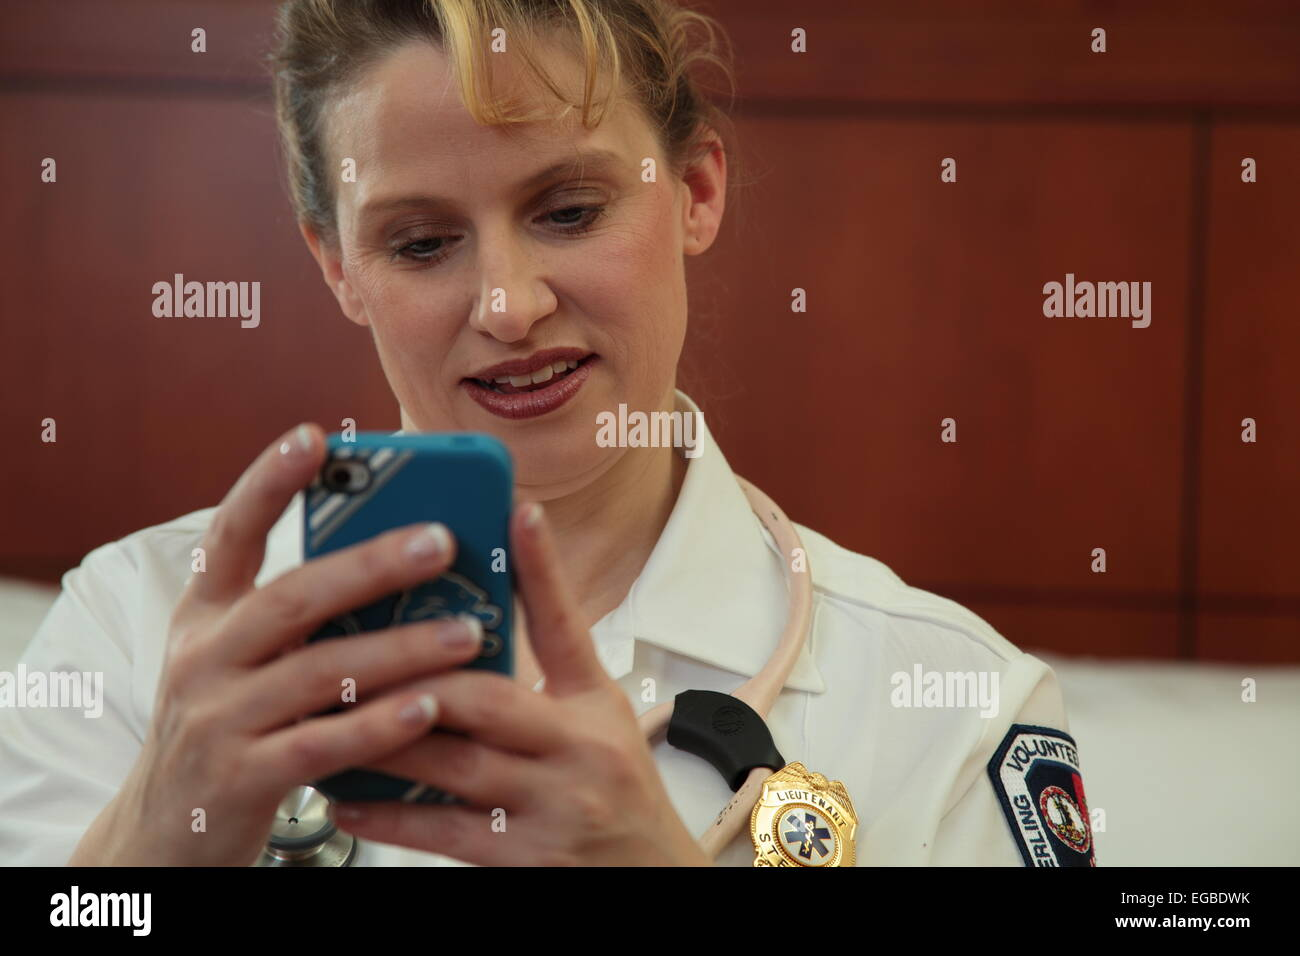 EMT texting - Stock Image